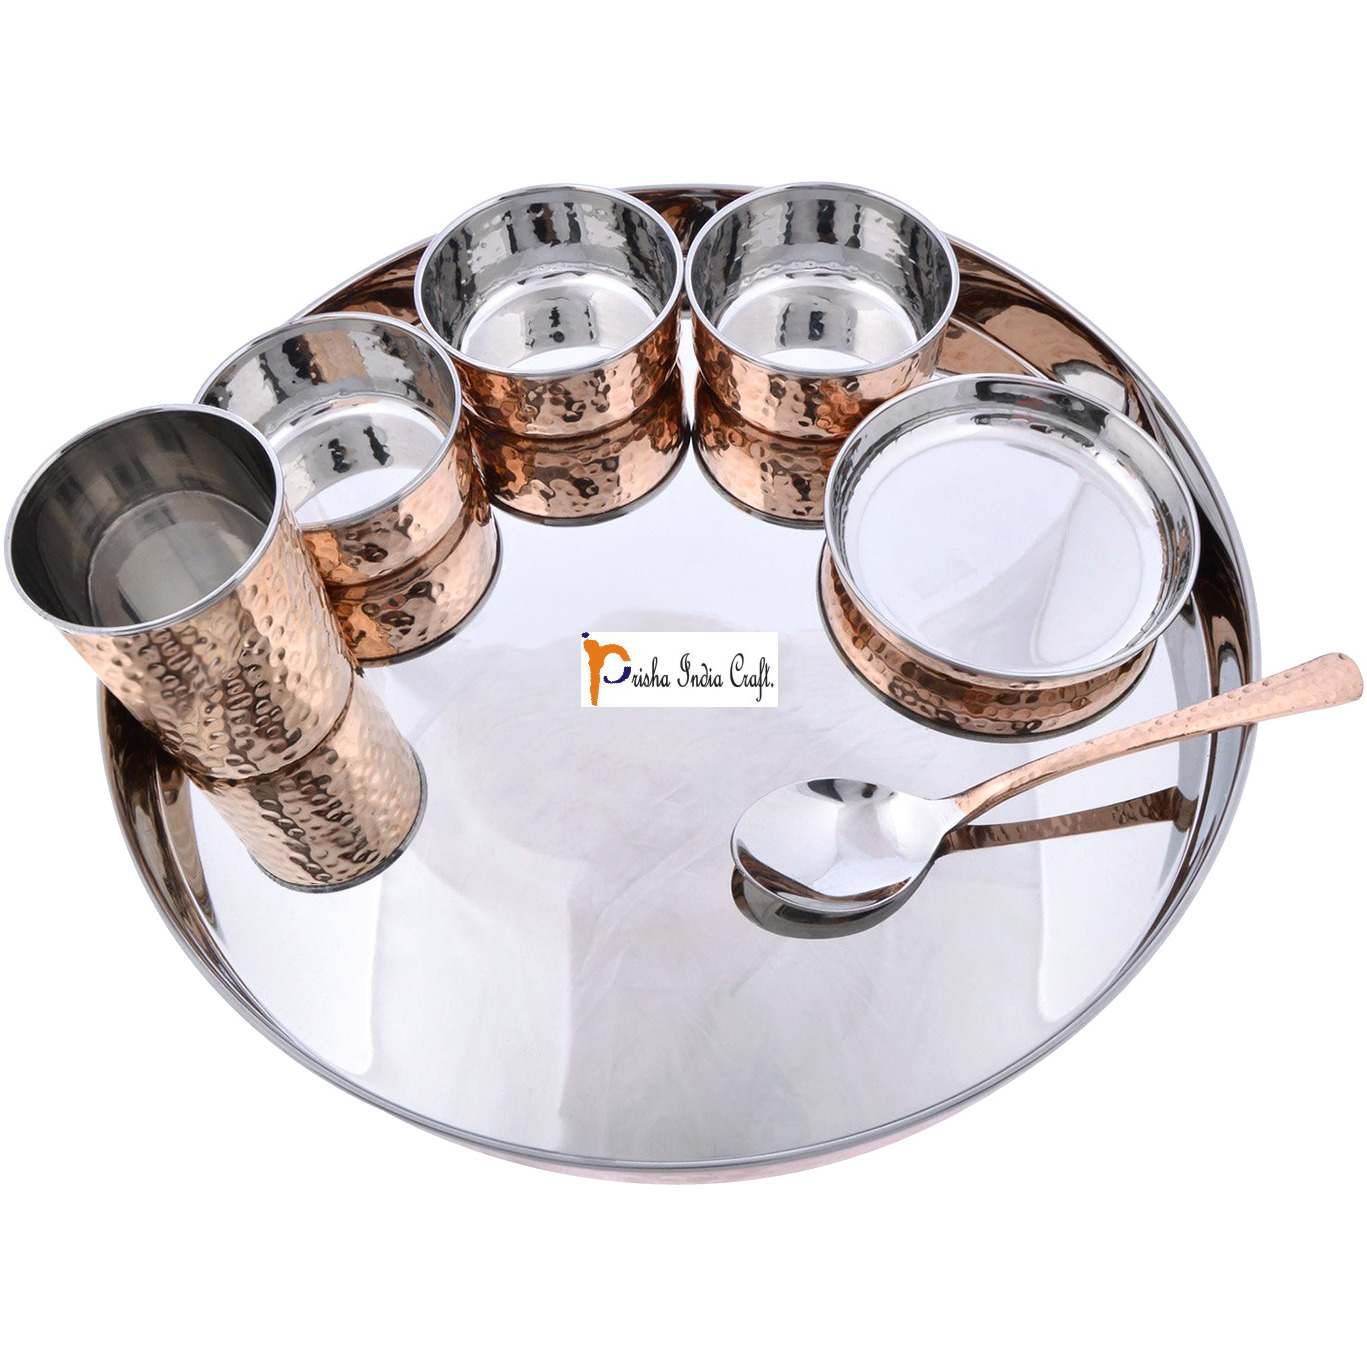 Prisha India Craft B. Dinnerware Traditional Stainless Steel Copper Dinner Set of Thali Plate, Bowls, Glass and Spoon, Dia 13  With 1 Pure Copper Pitcher Jug - Christmas Gift